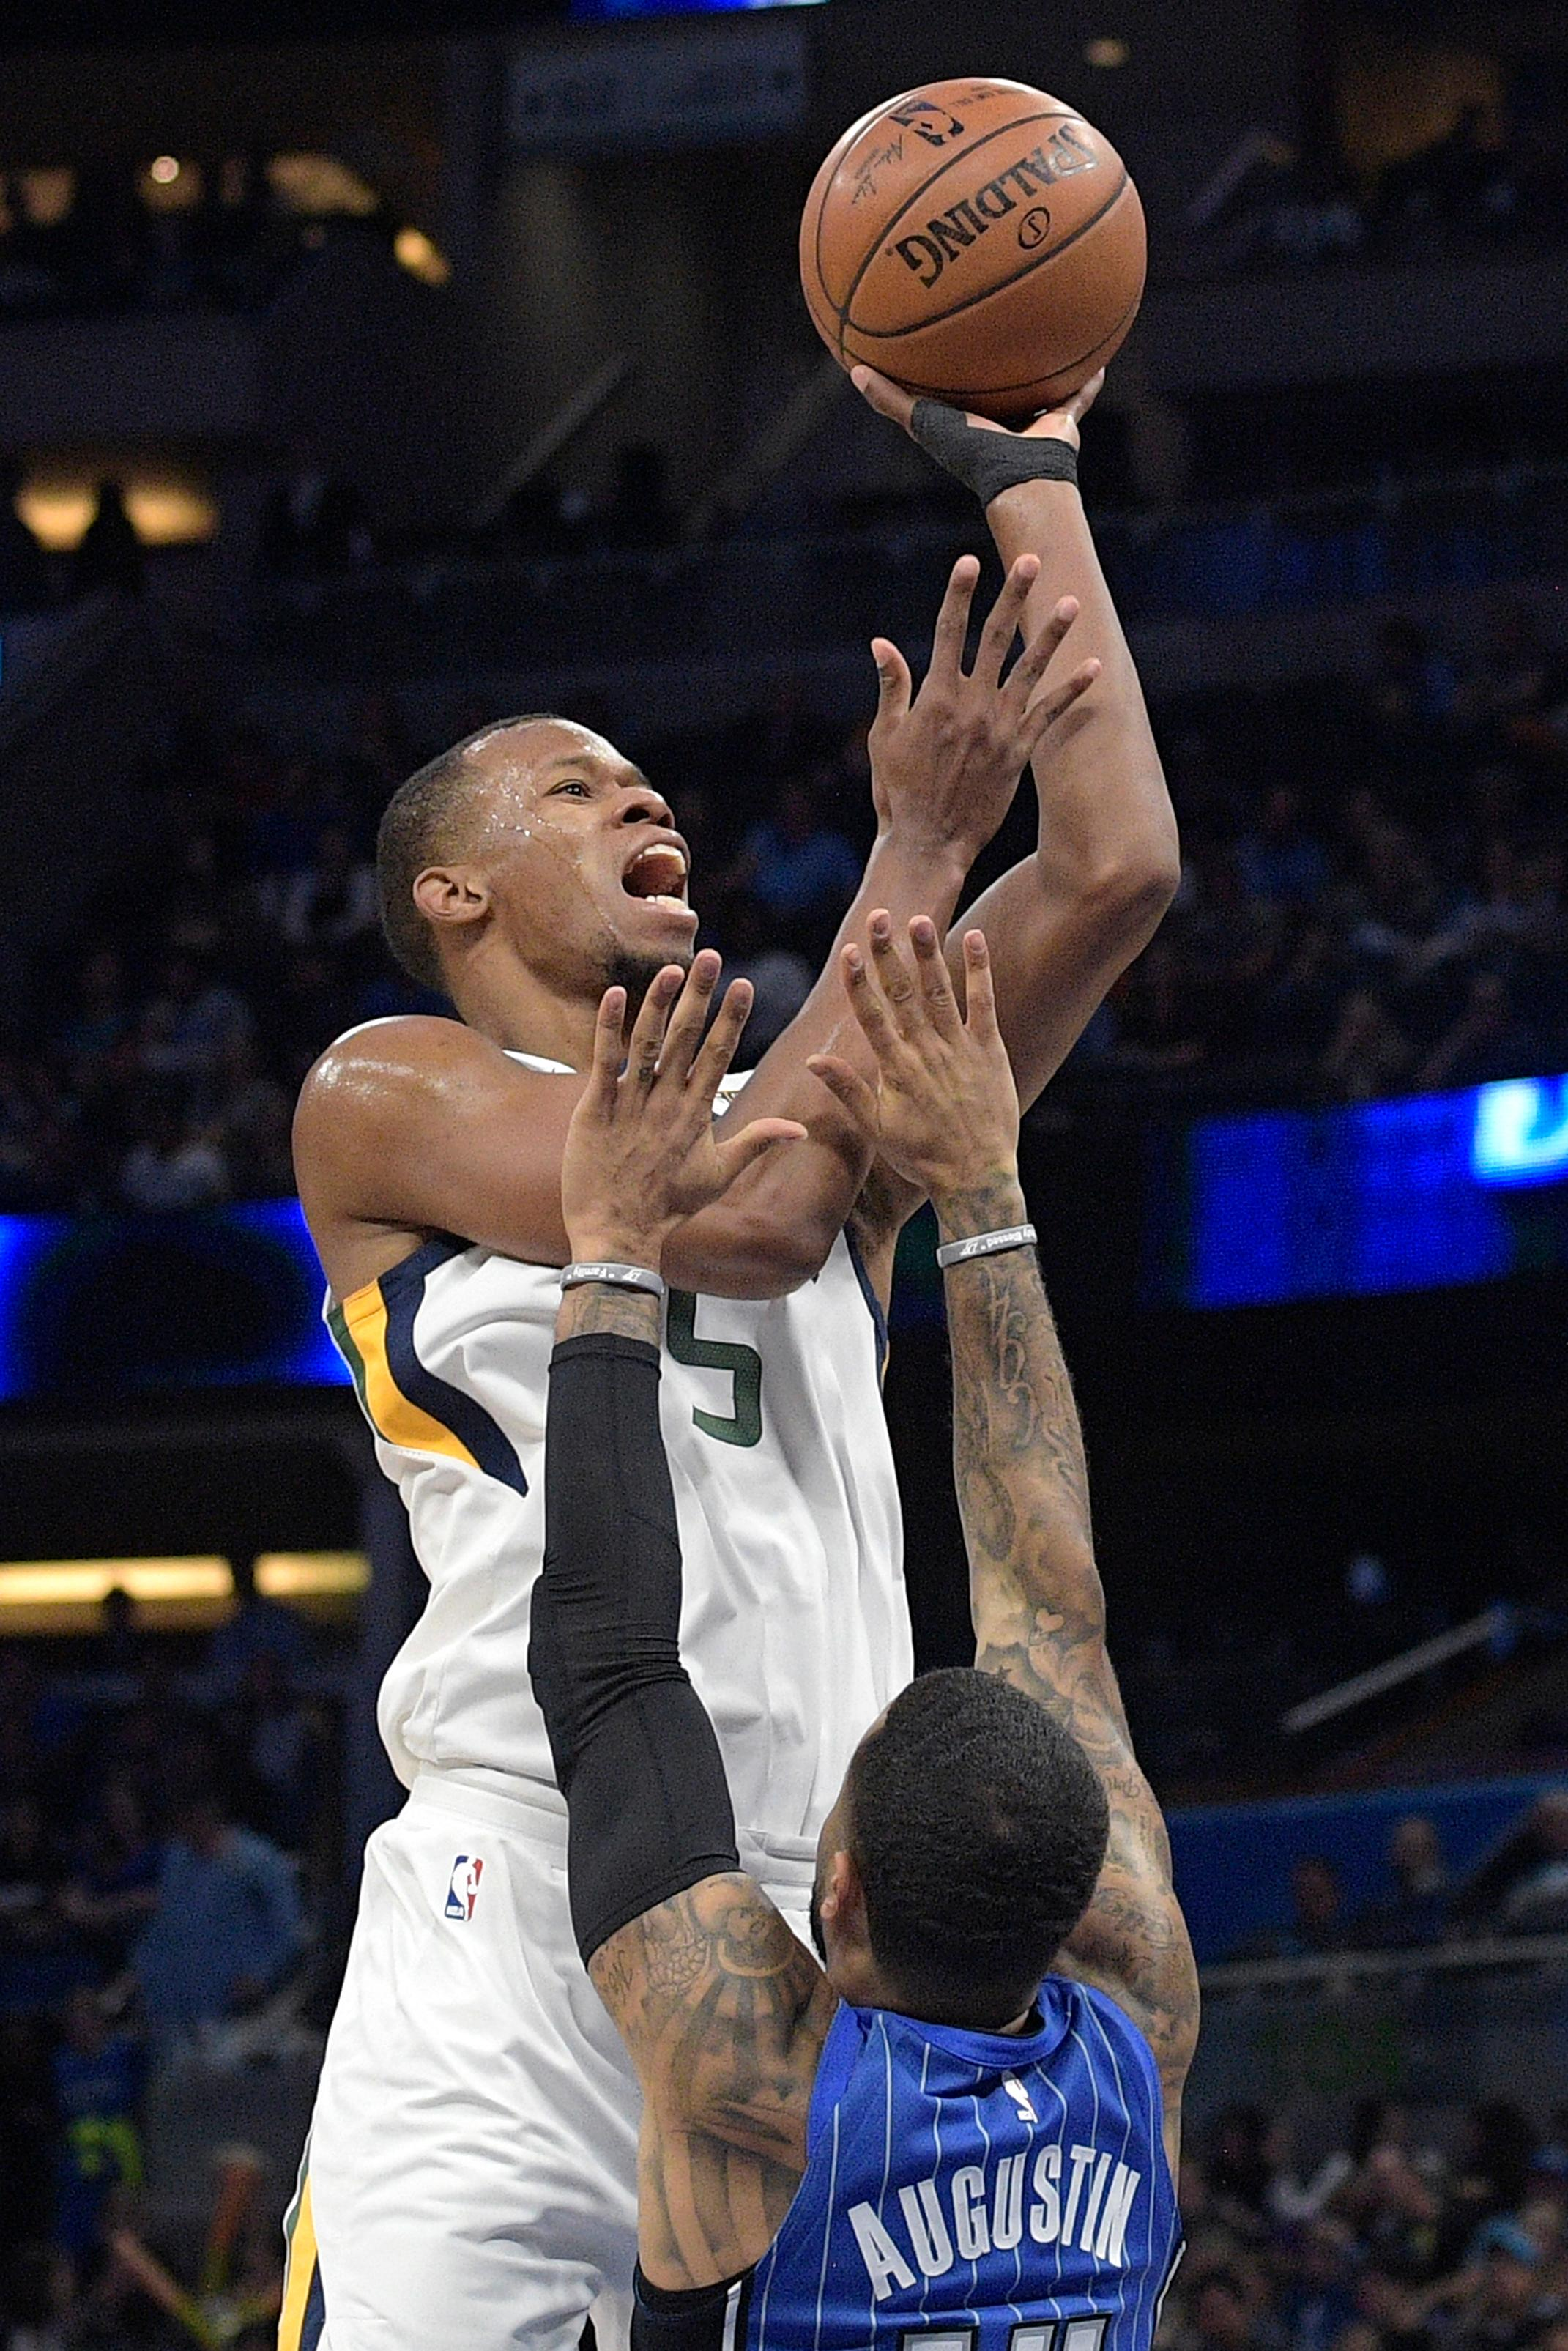 Utah Jazz guard Rodney Hood (5) goes up for a shot in front of Orlando Magic guard D.J. Augustin (14) during the first half of an NBA basketball game, Saturday, Nov. 18, 2017, in Orlando, Fla. (AP Photo/Phelan M. Ebenhack)